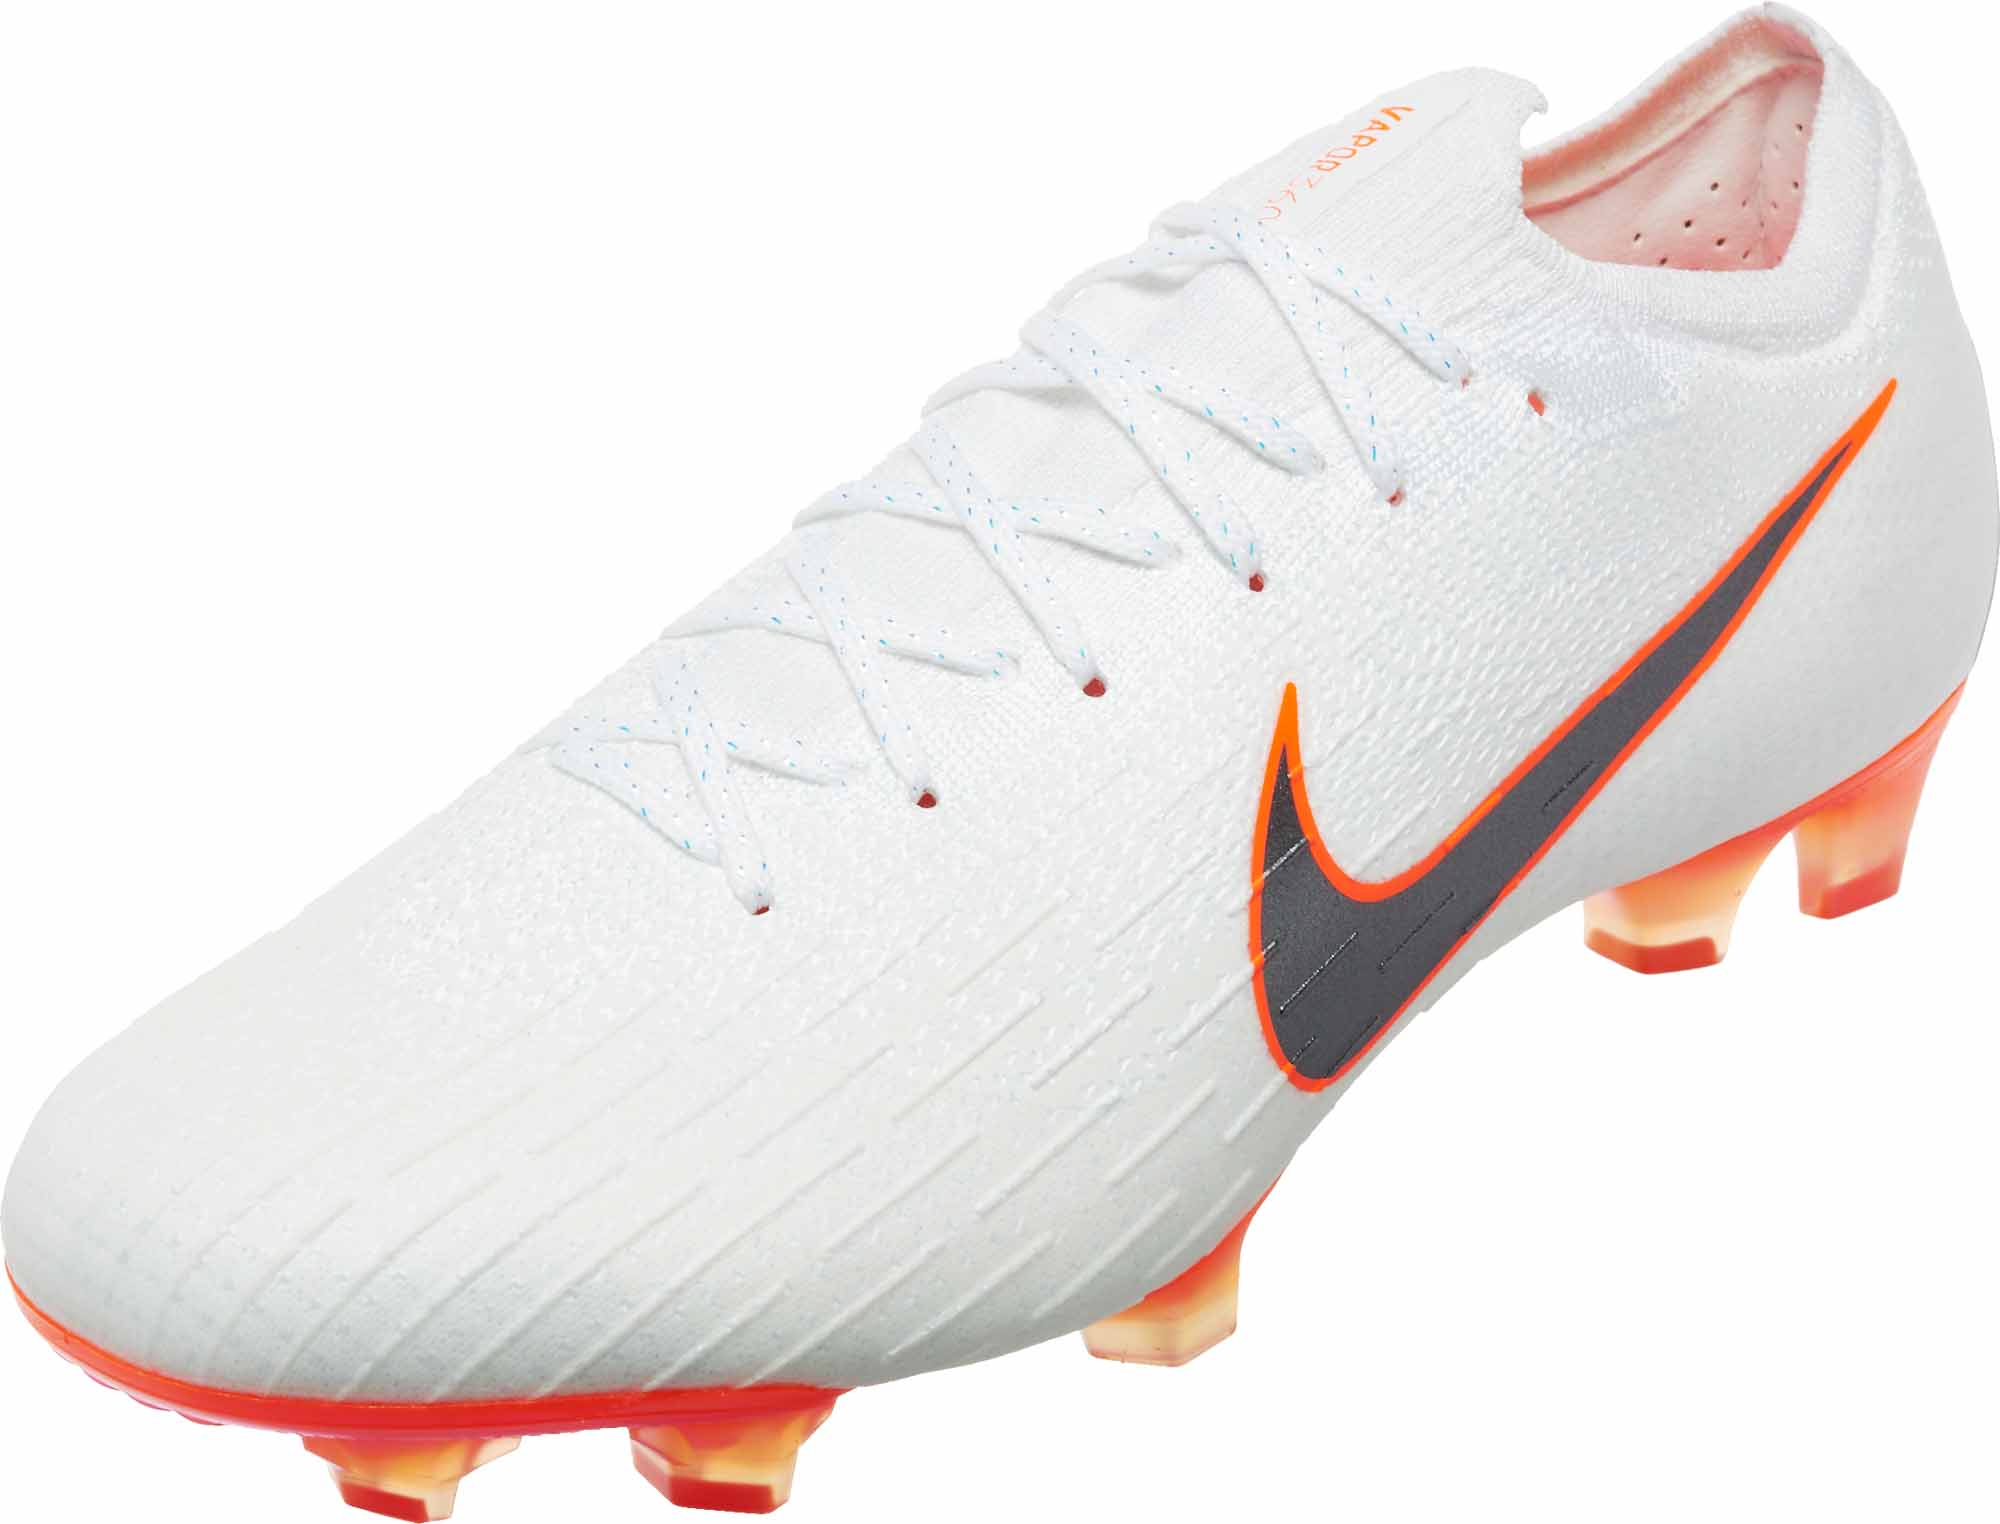 best sneakers 67992 743a8 Nike Mercurial Vapor 12 Elite FG – White Total Orange